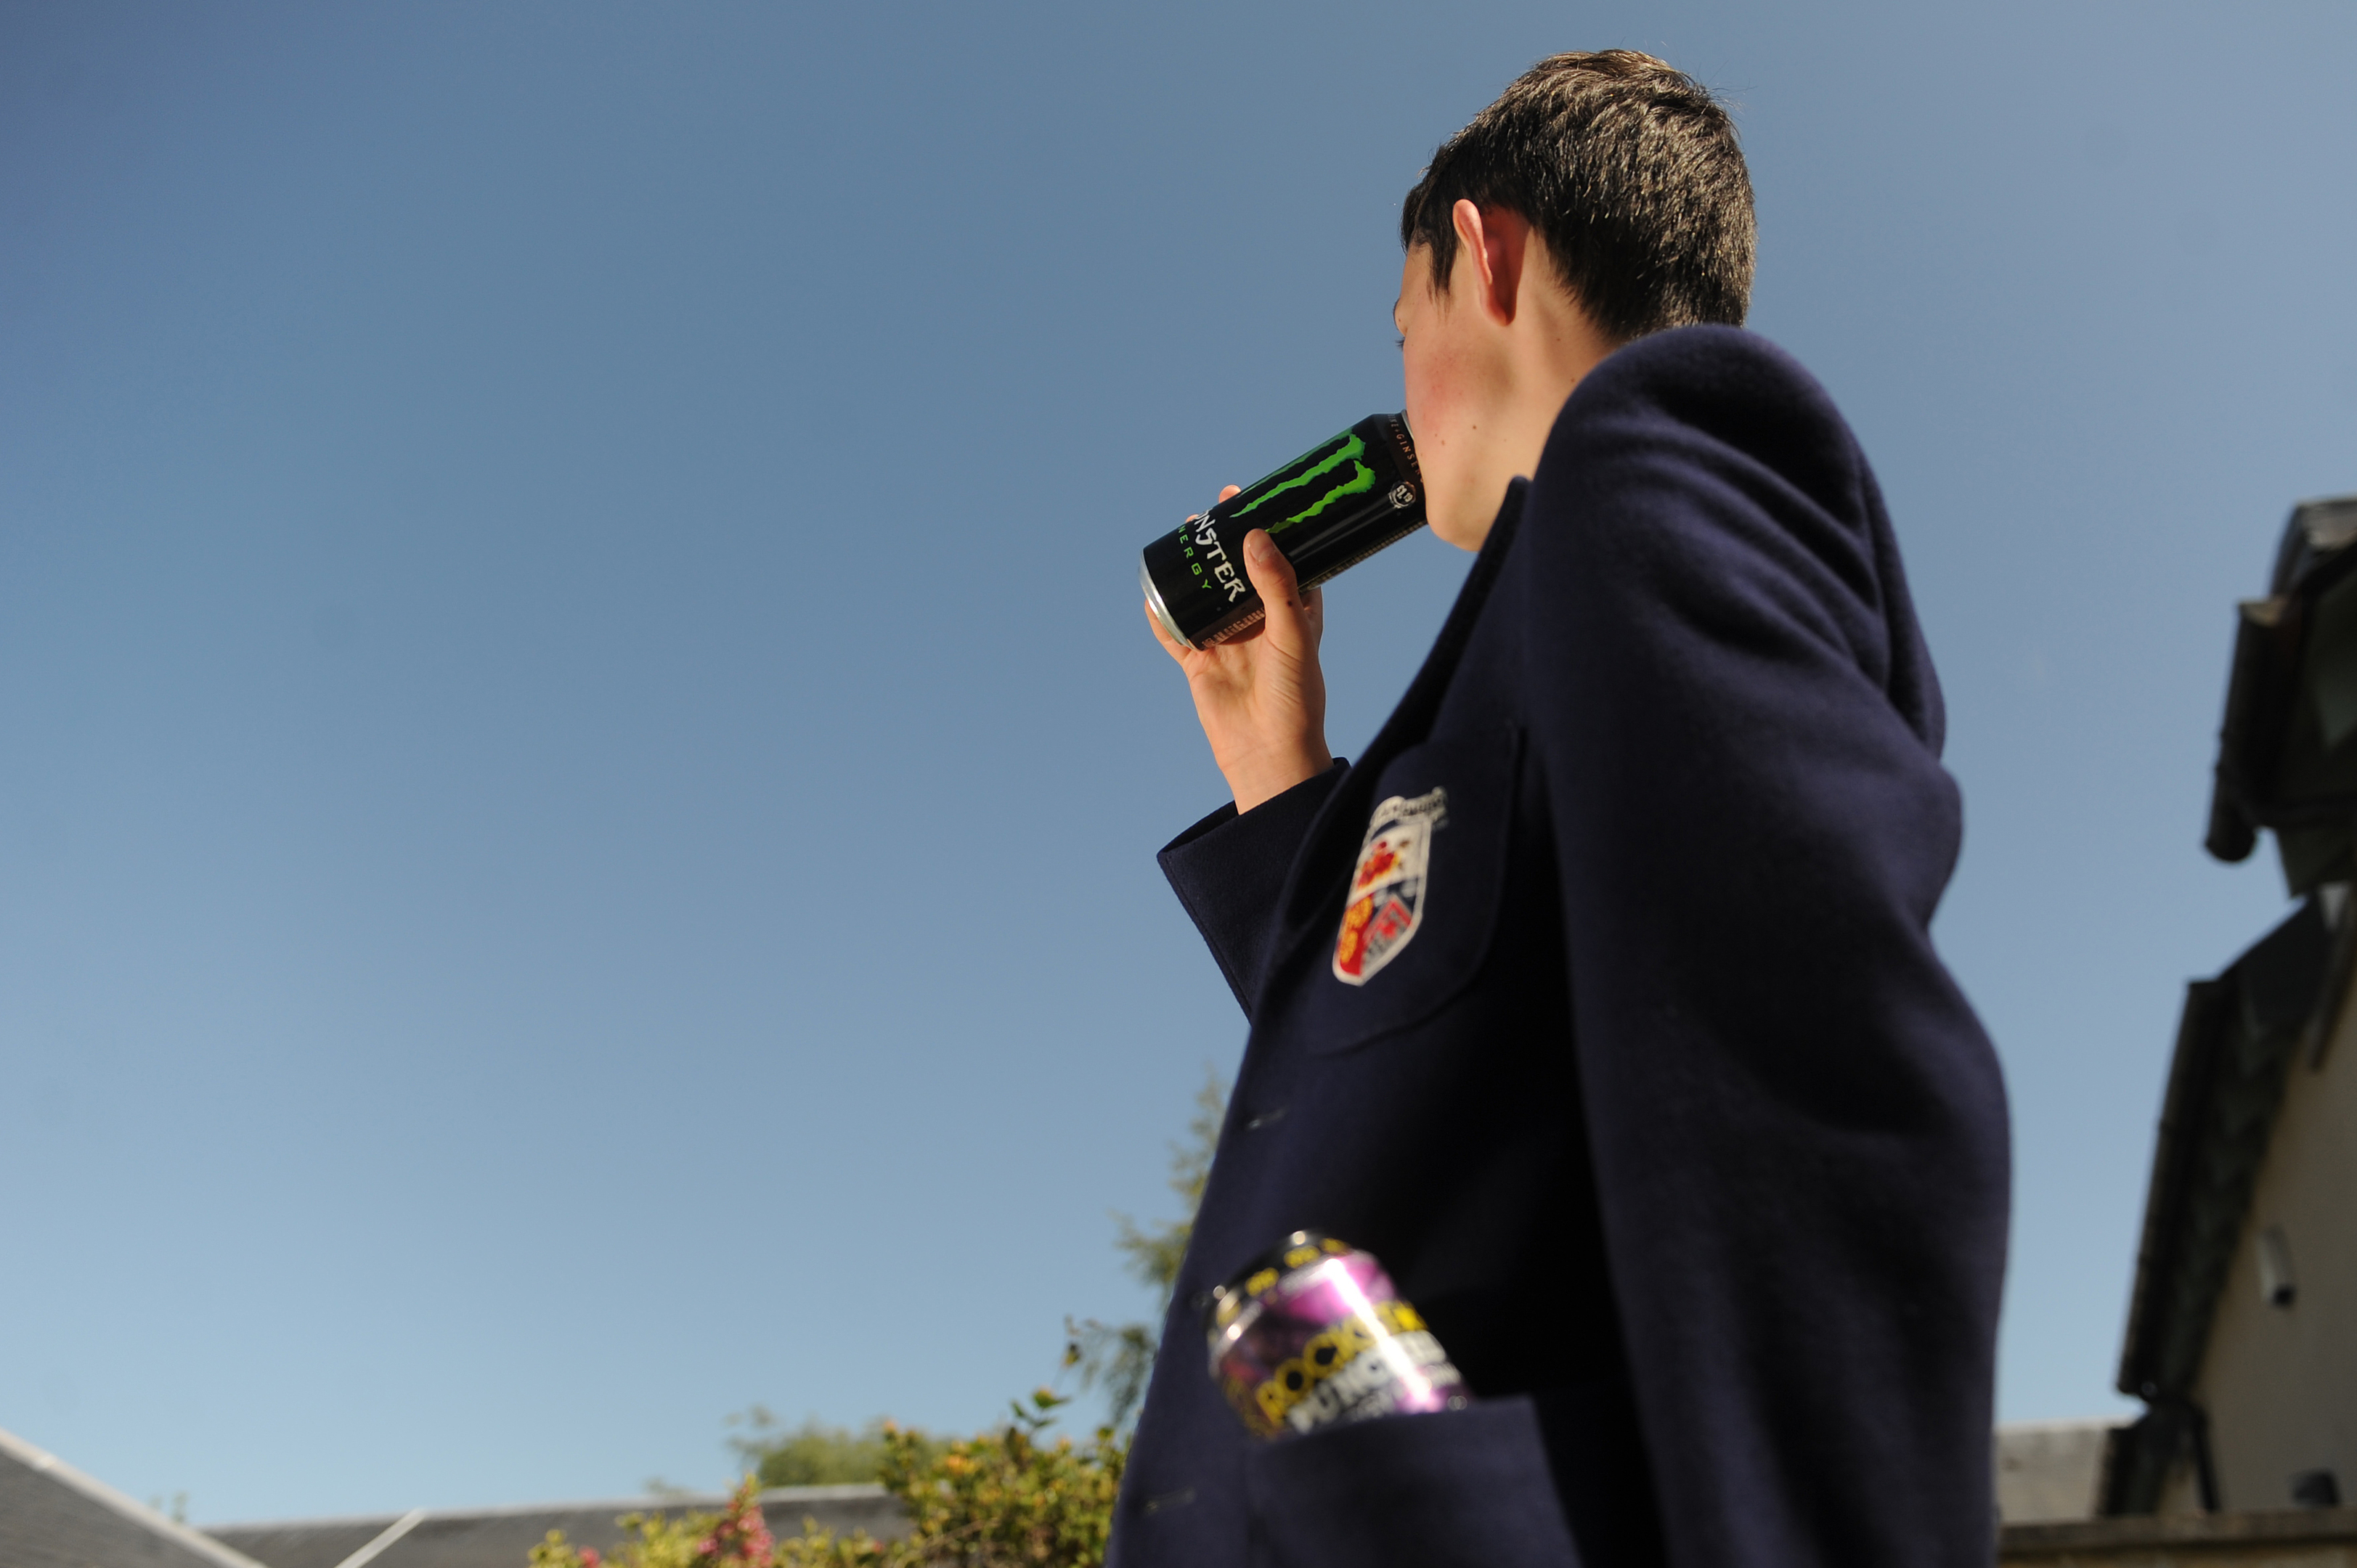 """Consuming so-called """"energy drinks"""" has become part of the daily routine for many pupils."""